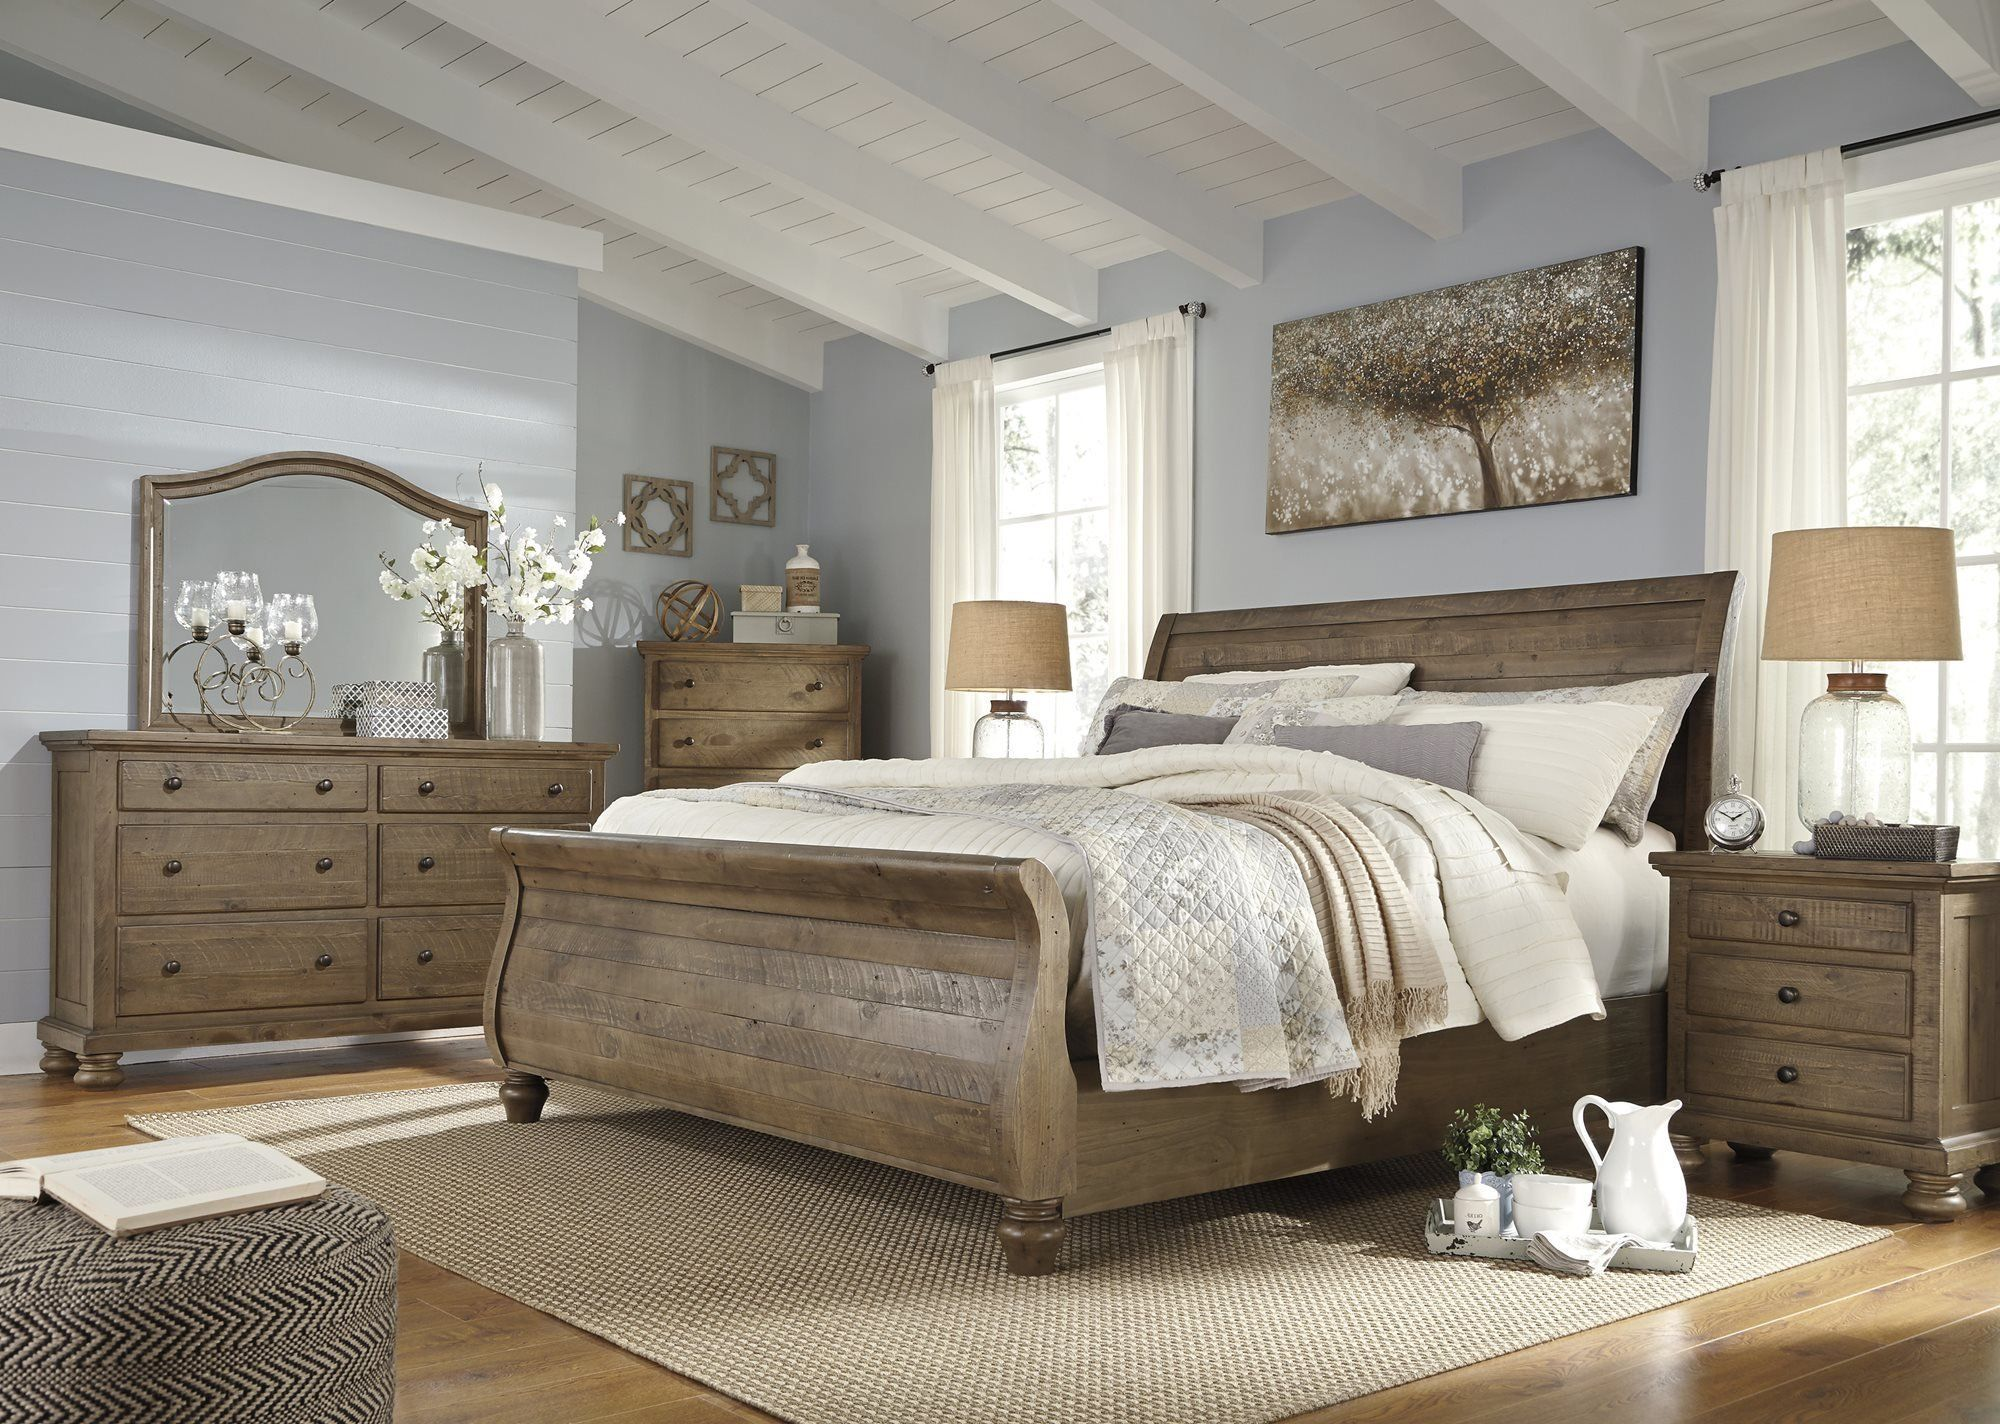 Ashley Trishley 5pc Bedroom Set E King Sleigh Bed Two Nightstand Dresser Mirror In Light Brown Co King Bedroom Sets King Bedroom Furniture Bedroom Sets Queen